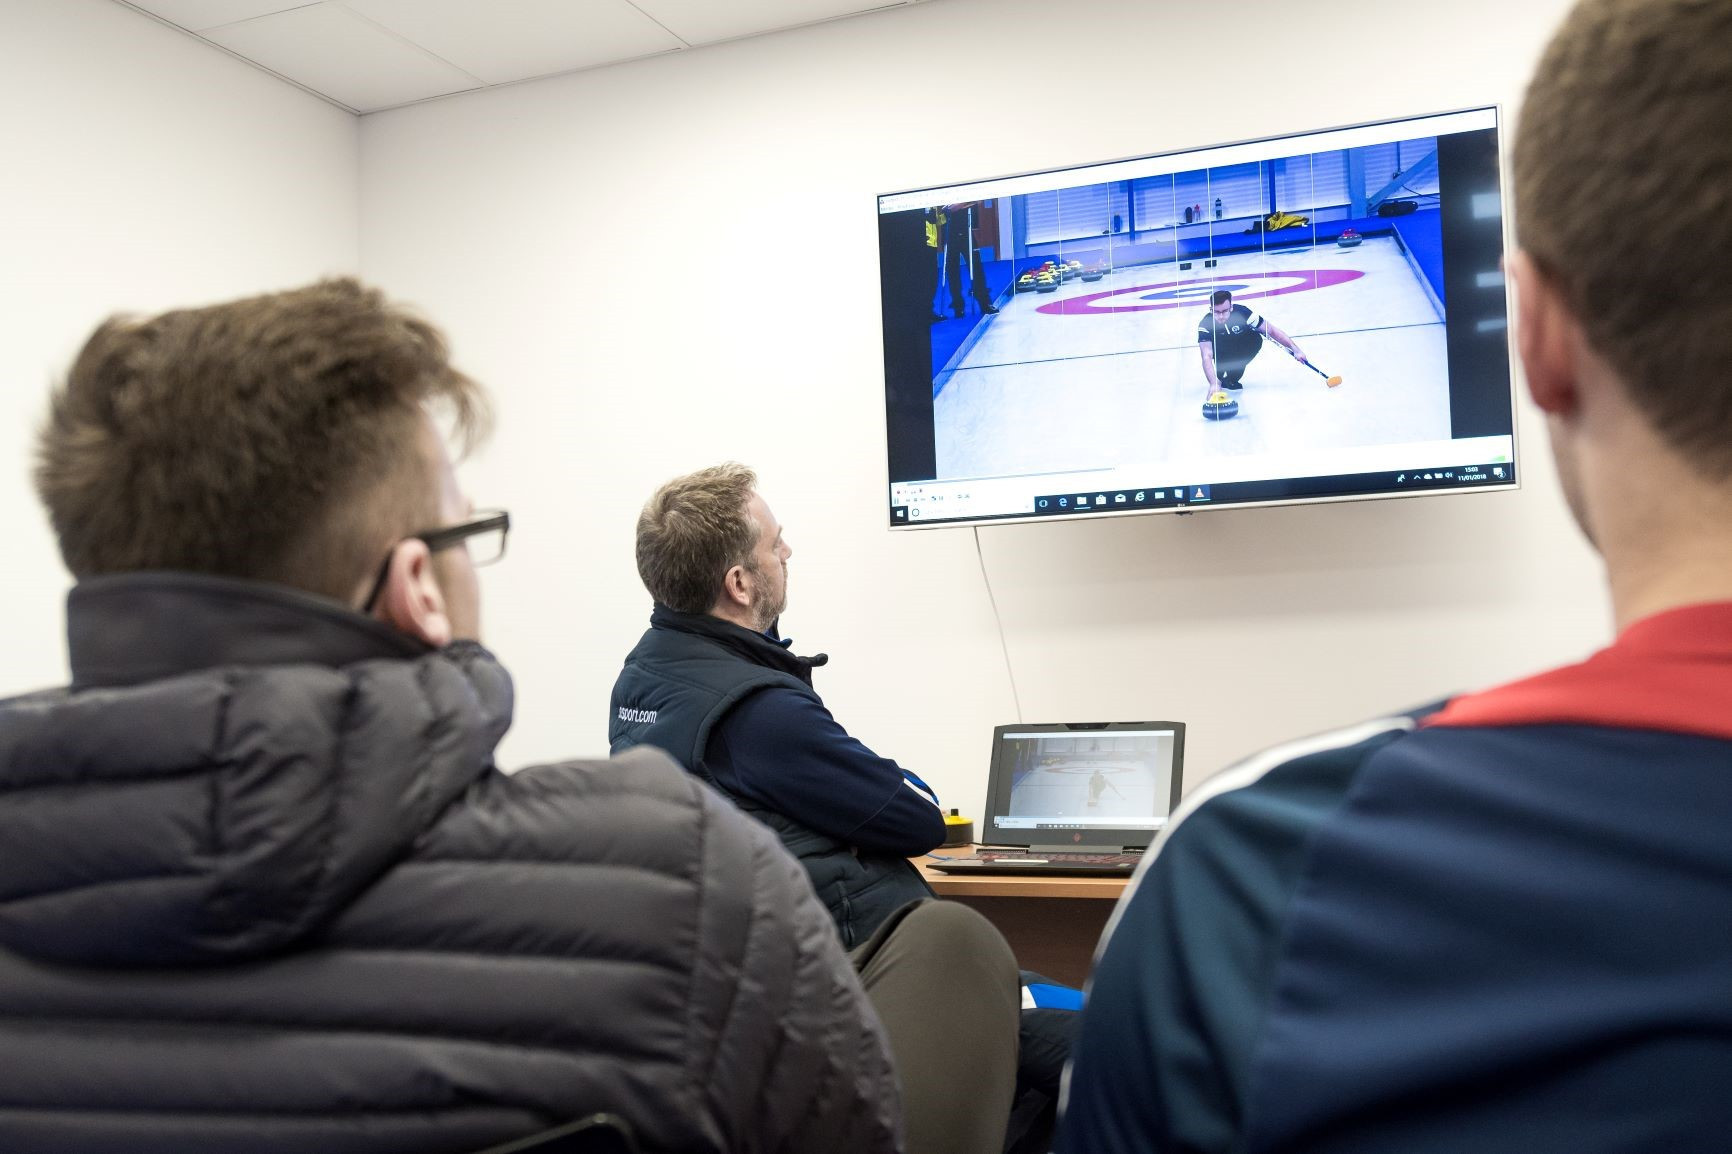 Sports analysis camera deal to bolster British Curling's Beijing 2022 hopes